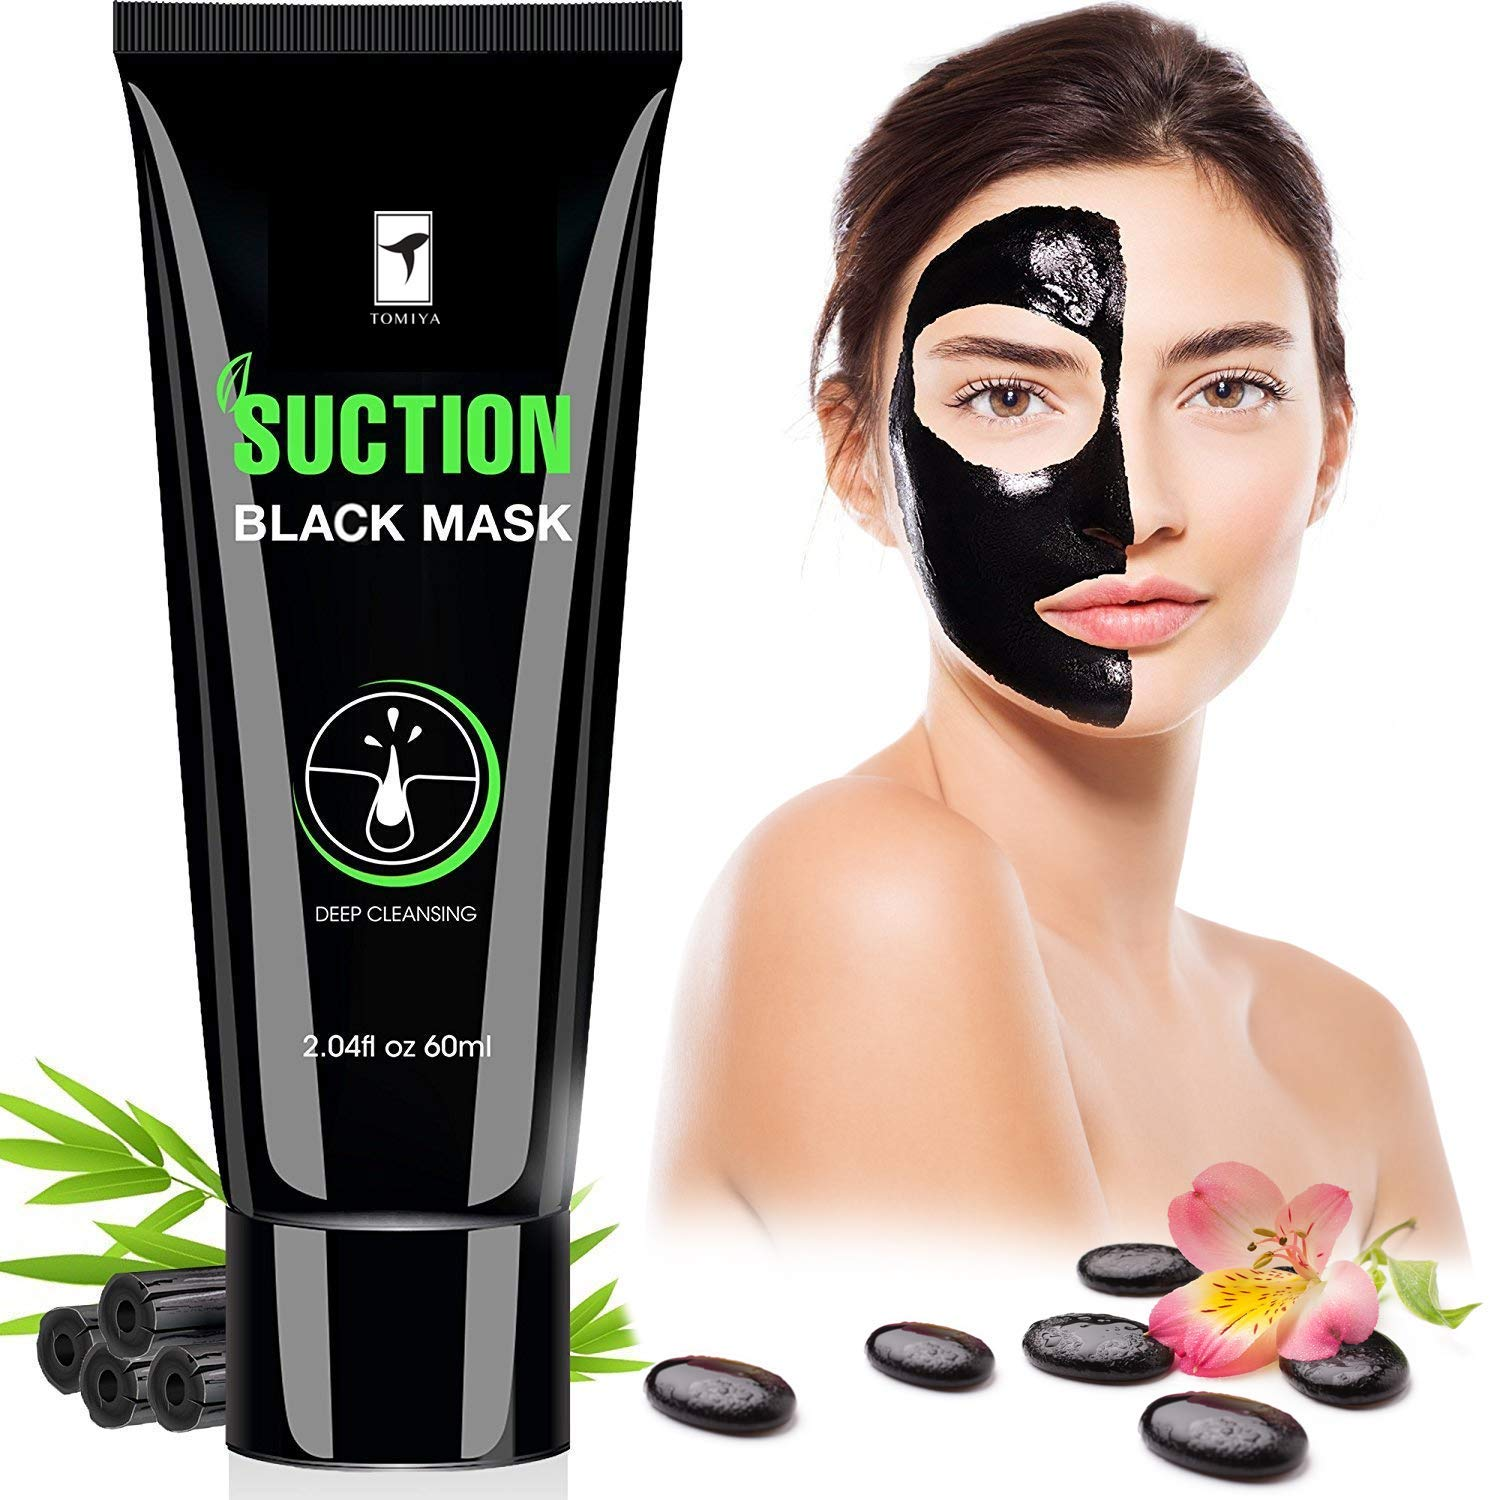 Piero Lorenzo Blackhead Remover Mask, Blackhead Peel Off Mask, Face Mask, Blackhead Mask, Black Mask Deep Cleaning Facial Mask for Face Nose 60g BM by Piero Lorenzo